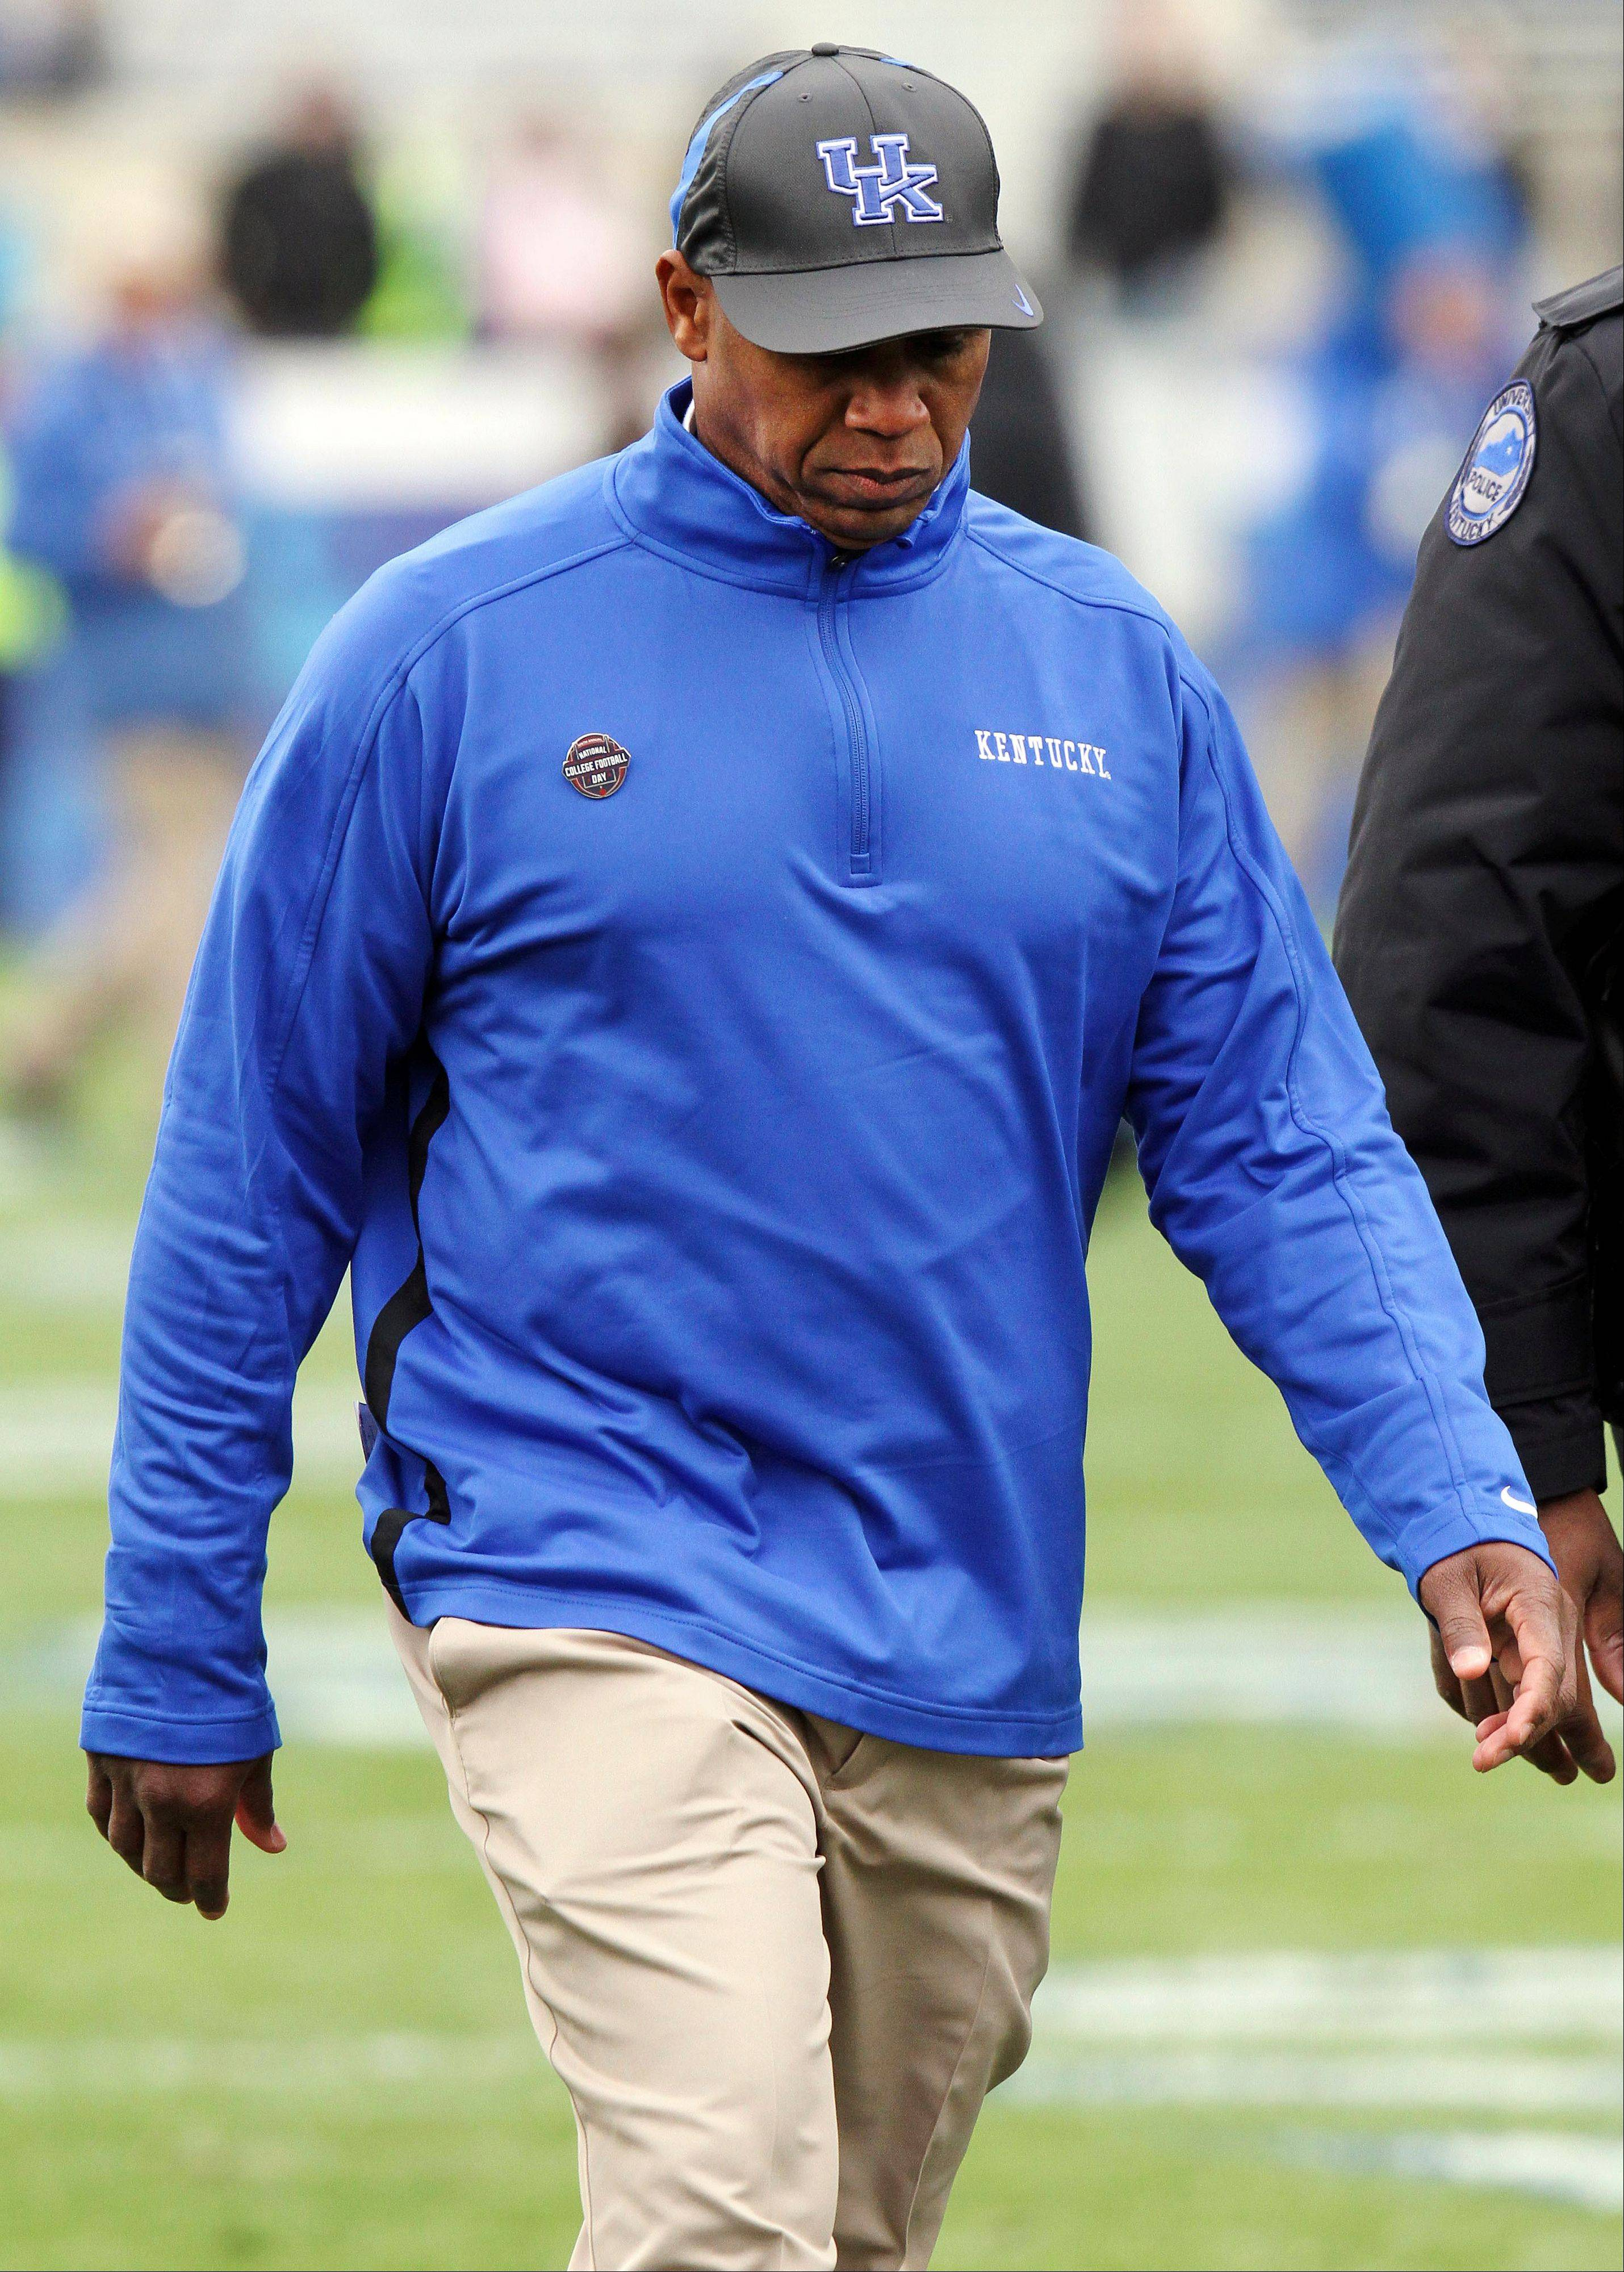 Kentucky head coach Joker Phillips walks off the field after his team's 40-0 loss to Vanderbilt on Saturday at Commonwealth Stadium in Lexington, Ky. Phillips was fired Sunday.